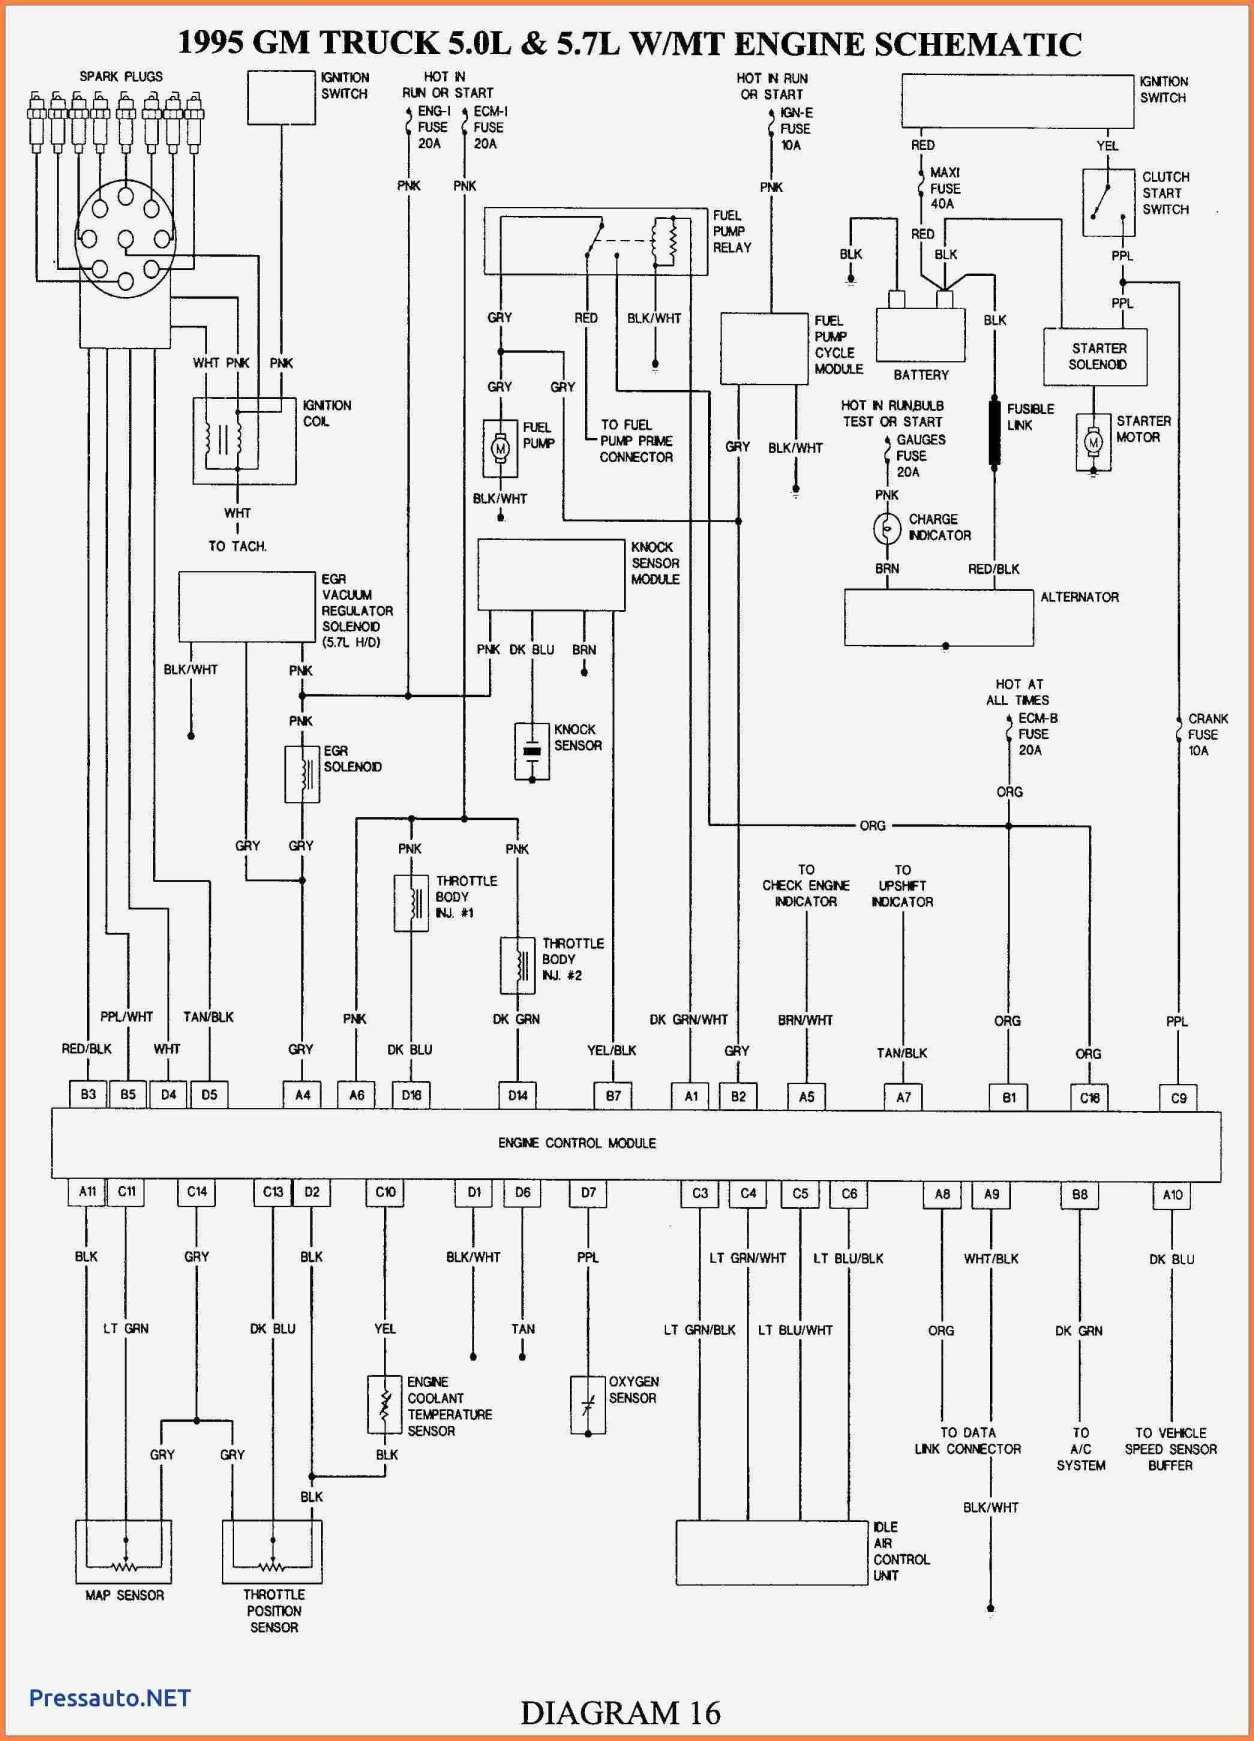 Engine Diagram Wiringg Net In 2020 Chevy Trucks Chevy 1500 Electrical Diagram